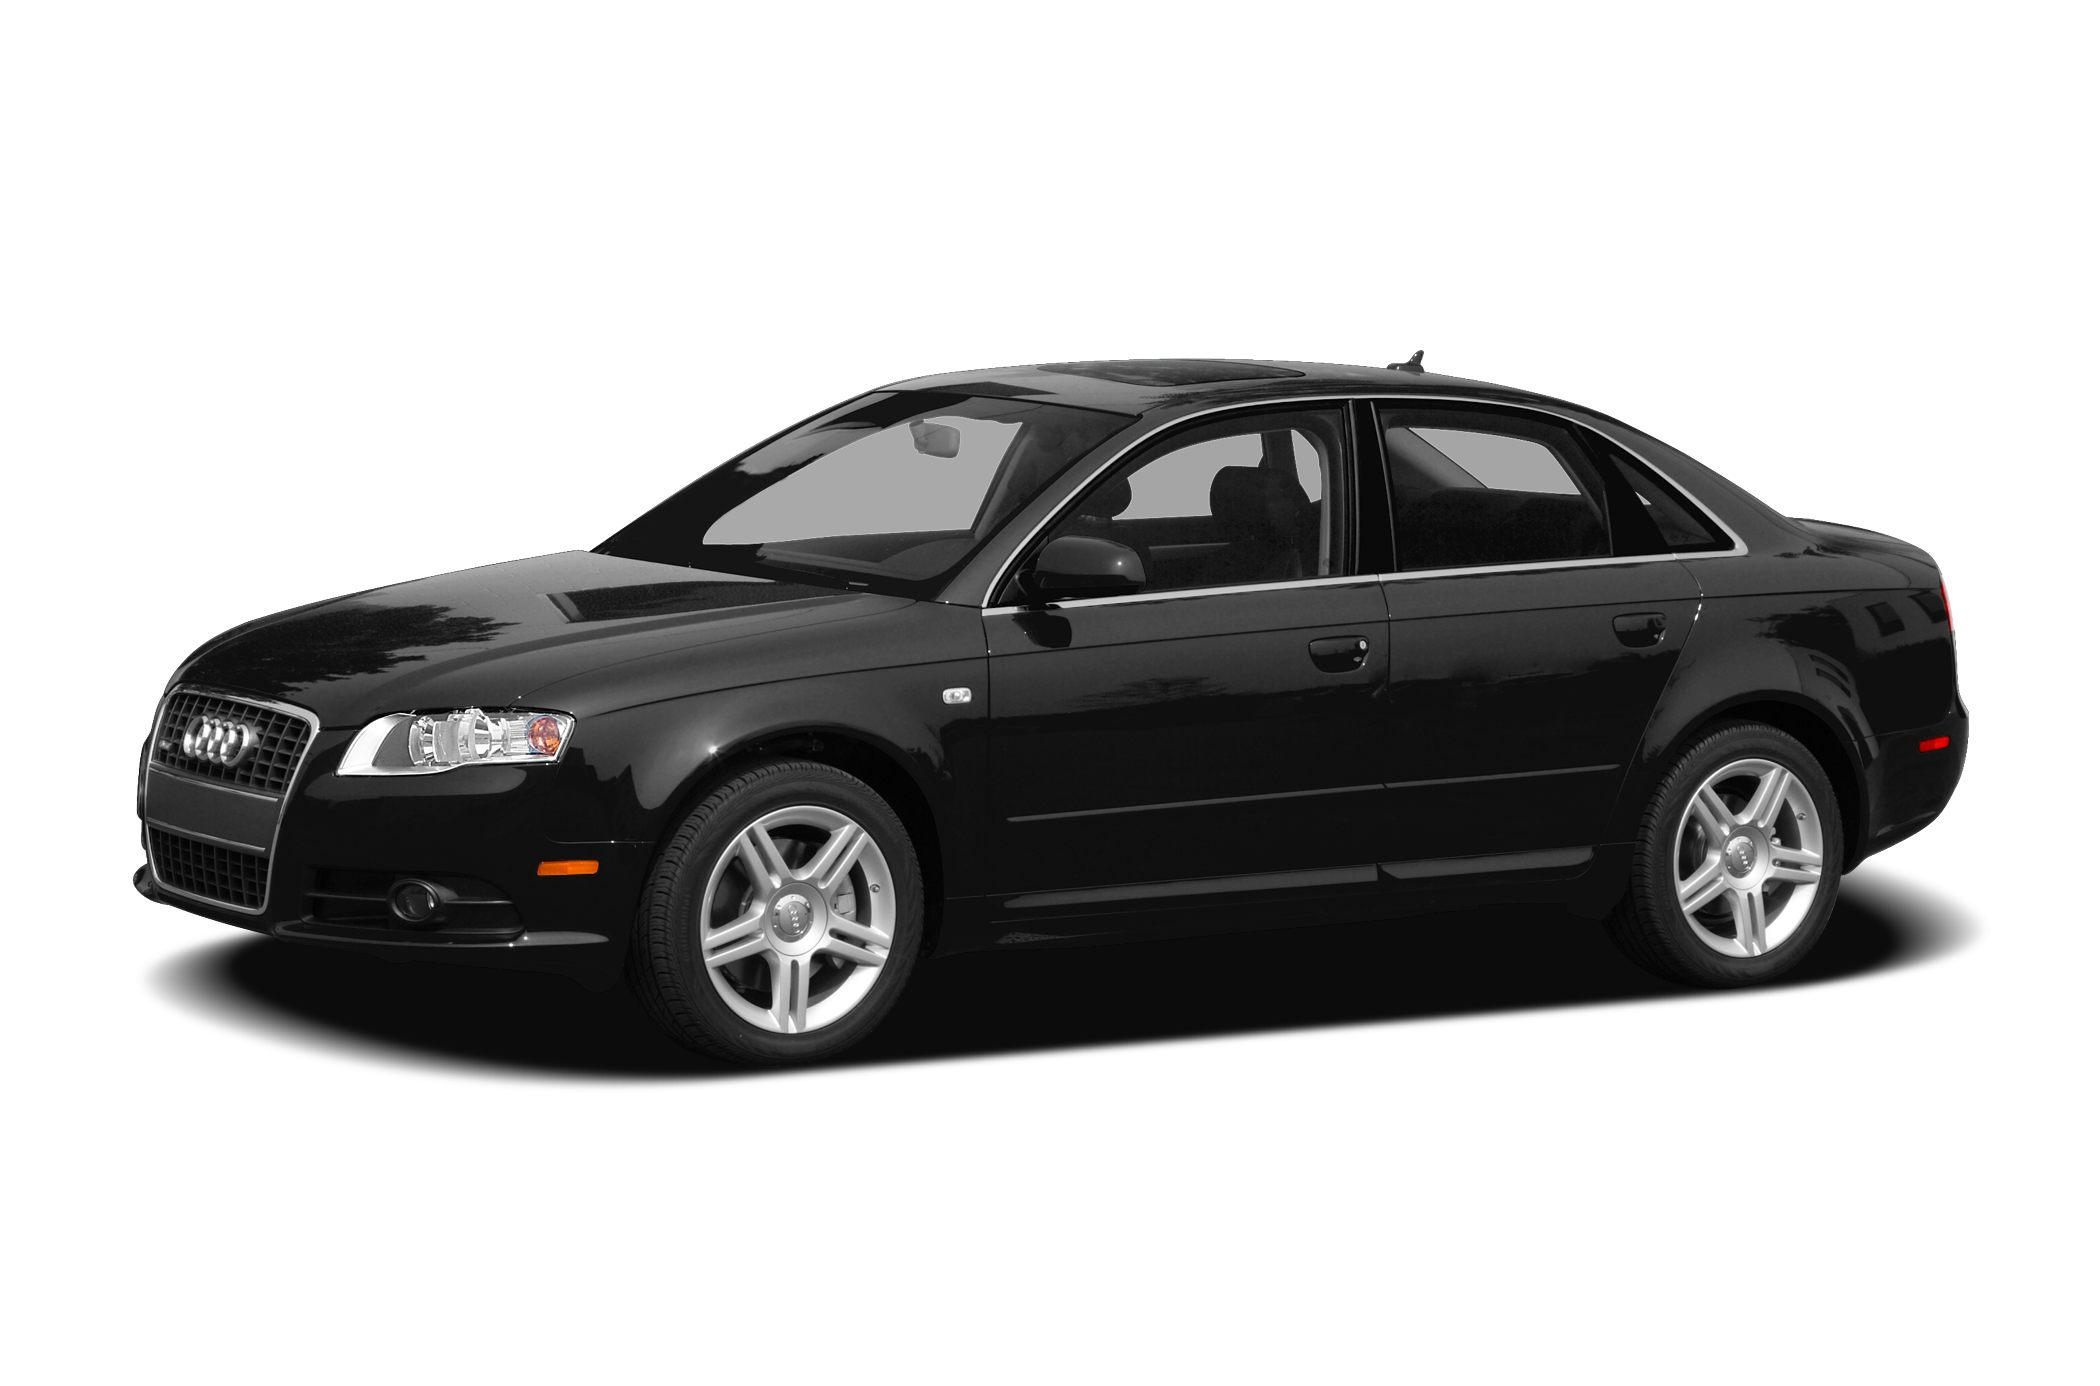 2008 Volvo S60 Overview